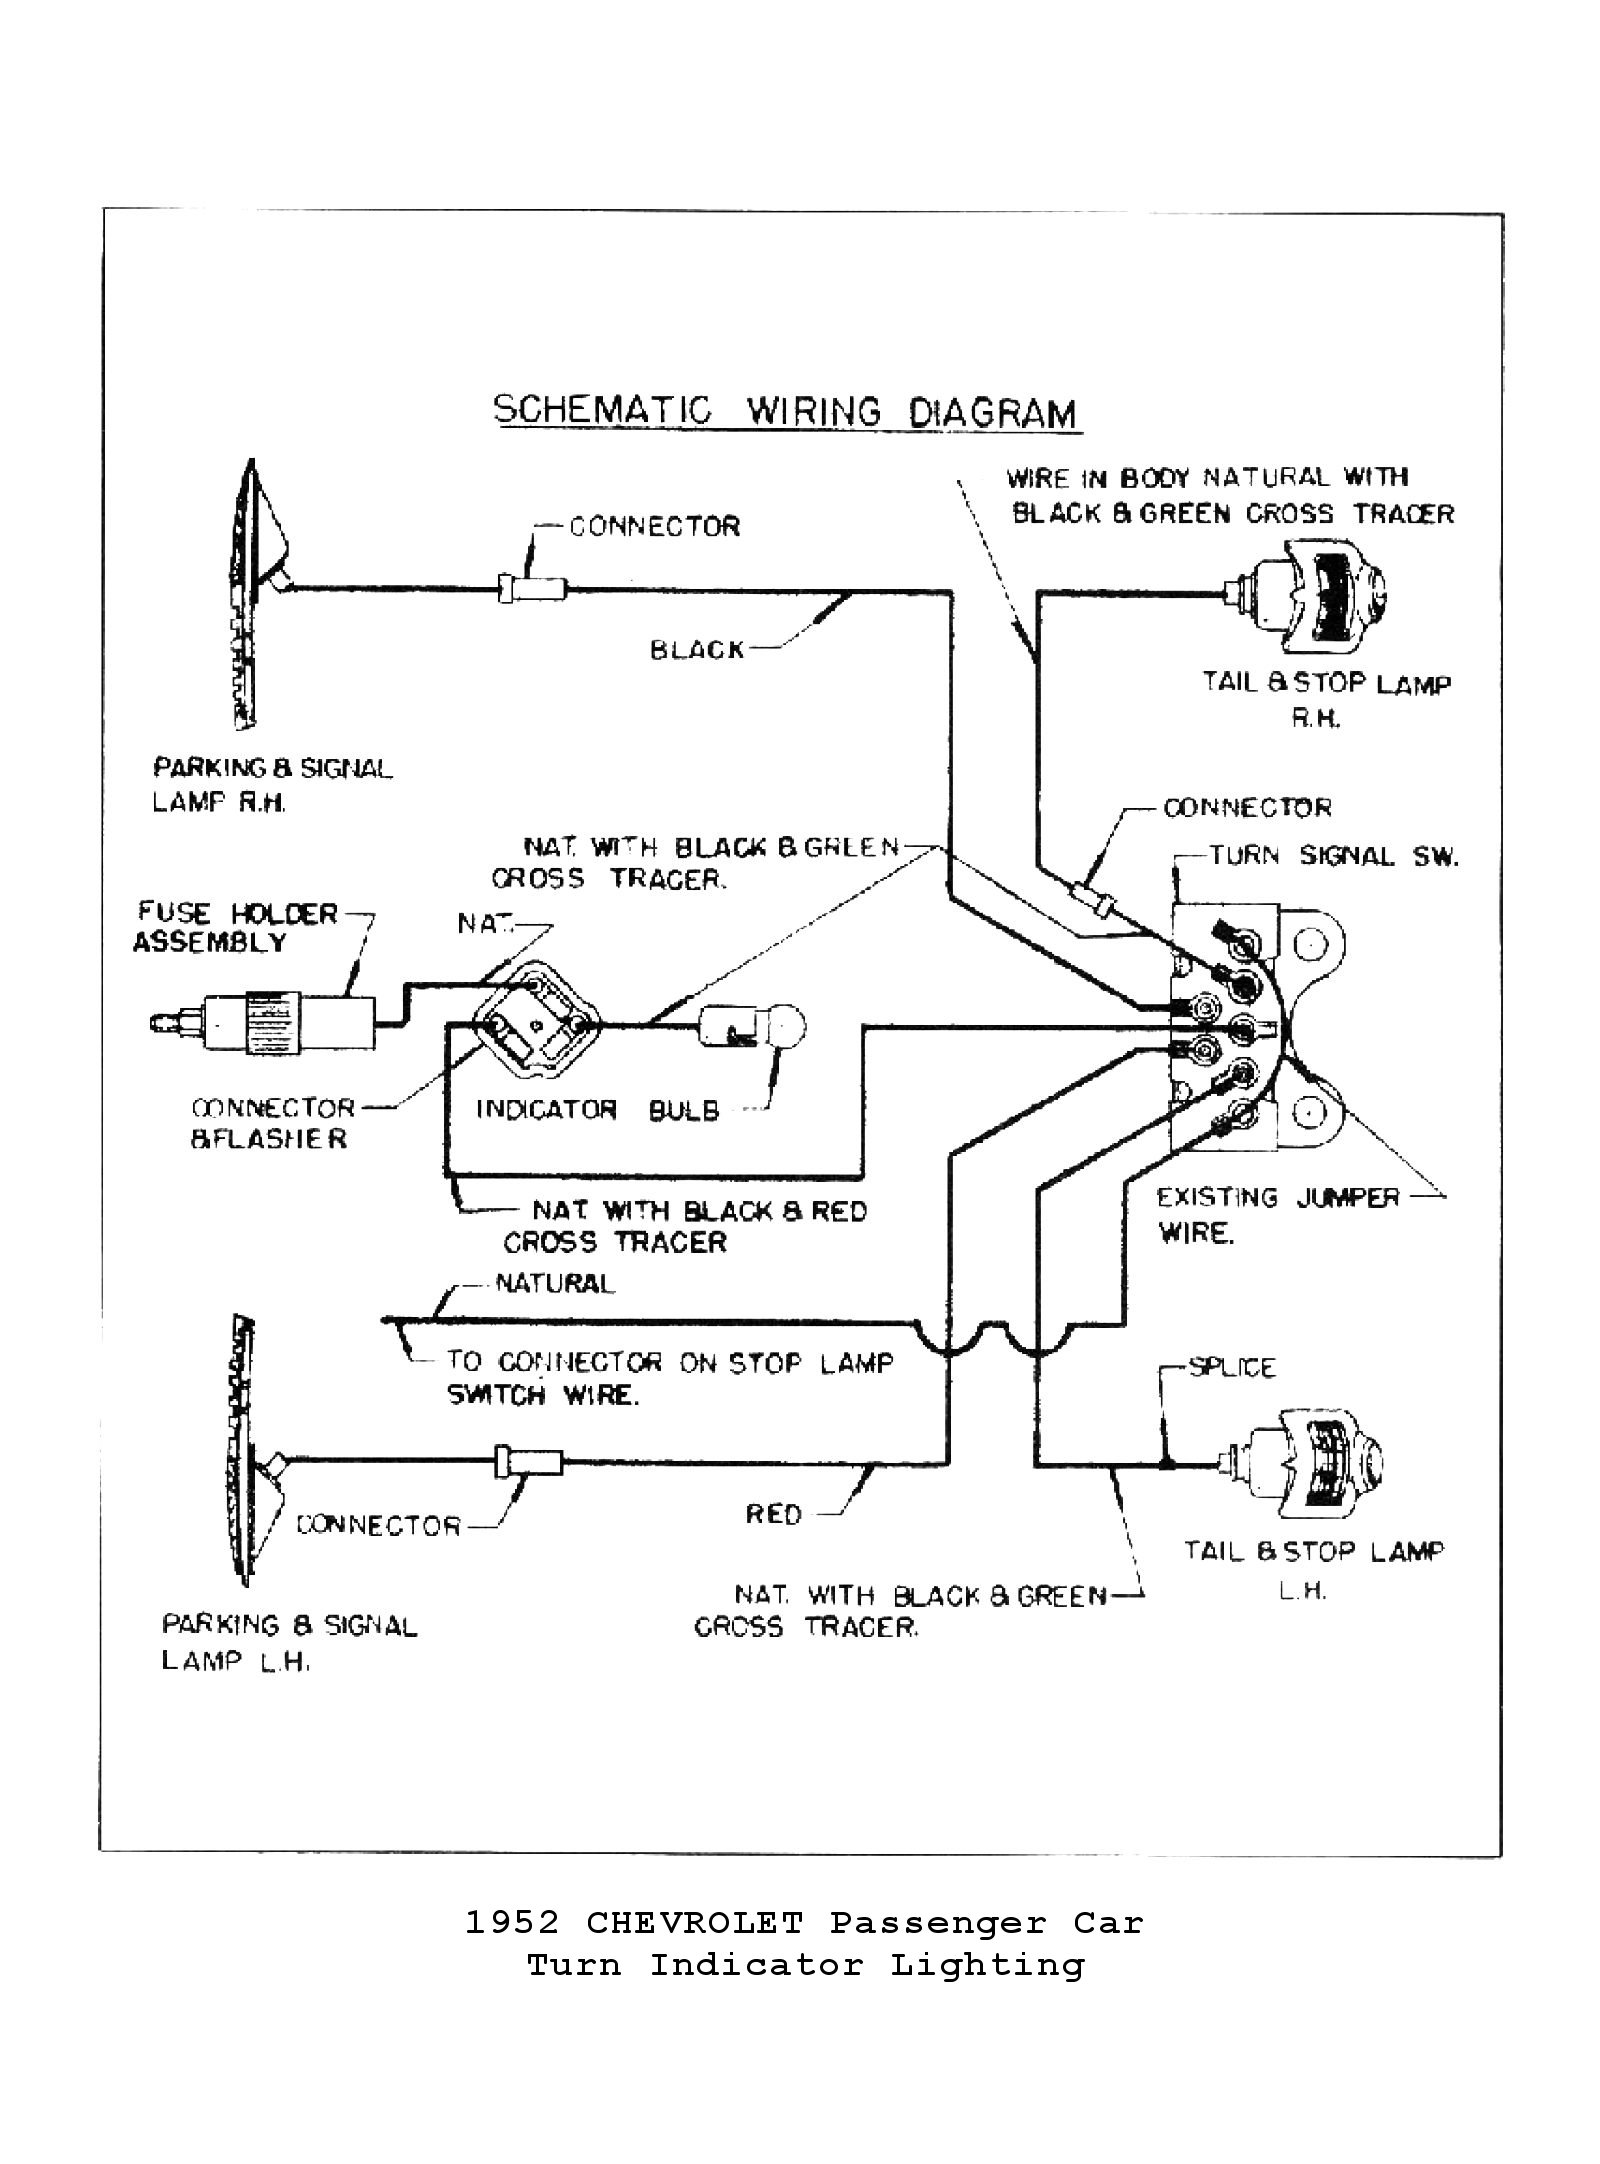 1953 chevy truck wiring schematics 1953 chevy wiring diagram 1953 image wiring diagram 1948 chevy truck wiring diagram 1948 chevy truck